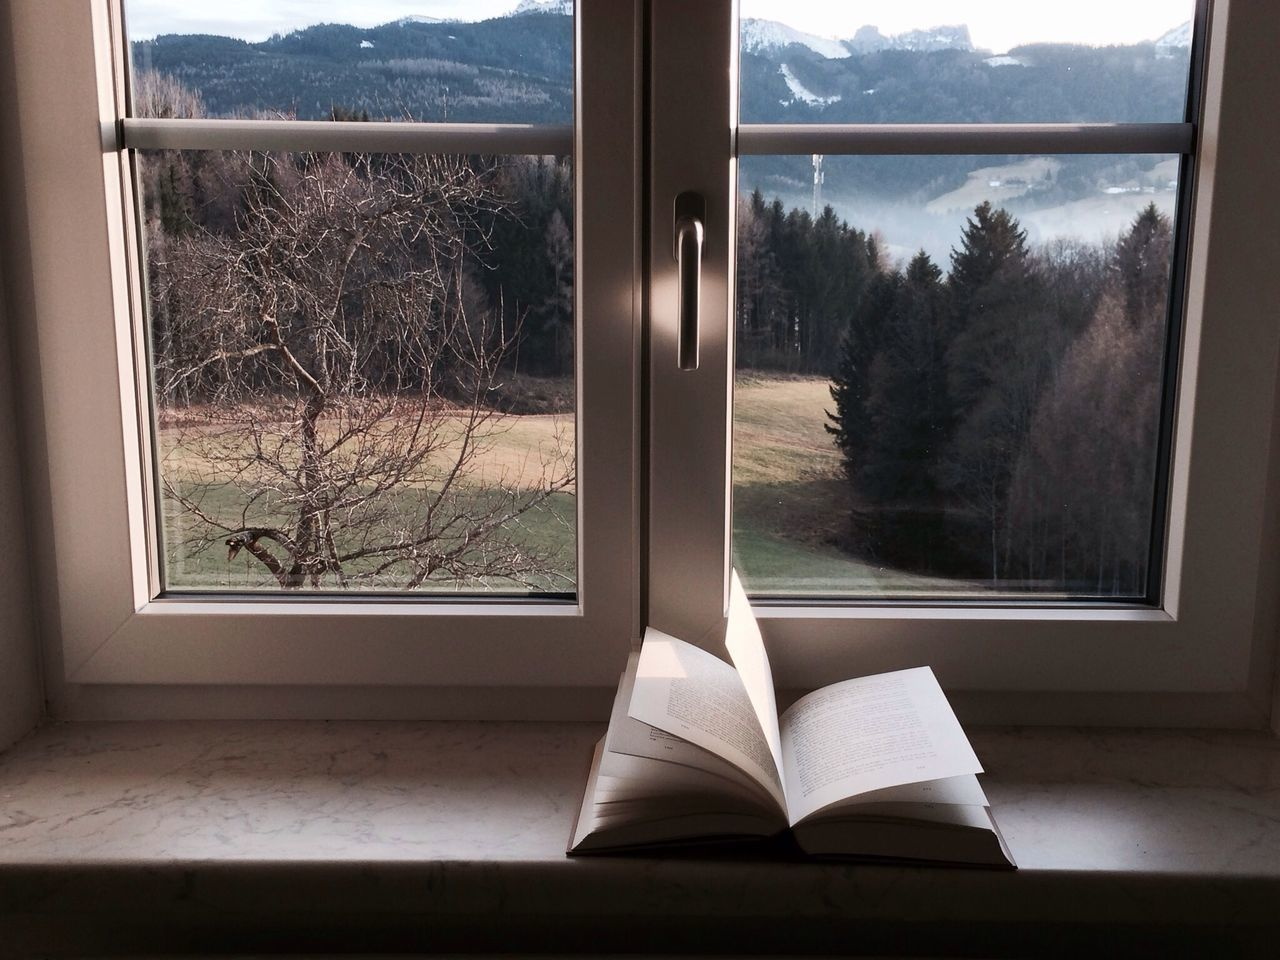 Book on window sill in front of scenic view of mountain through window